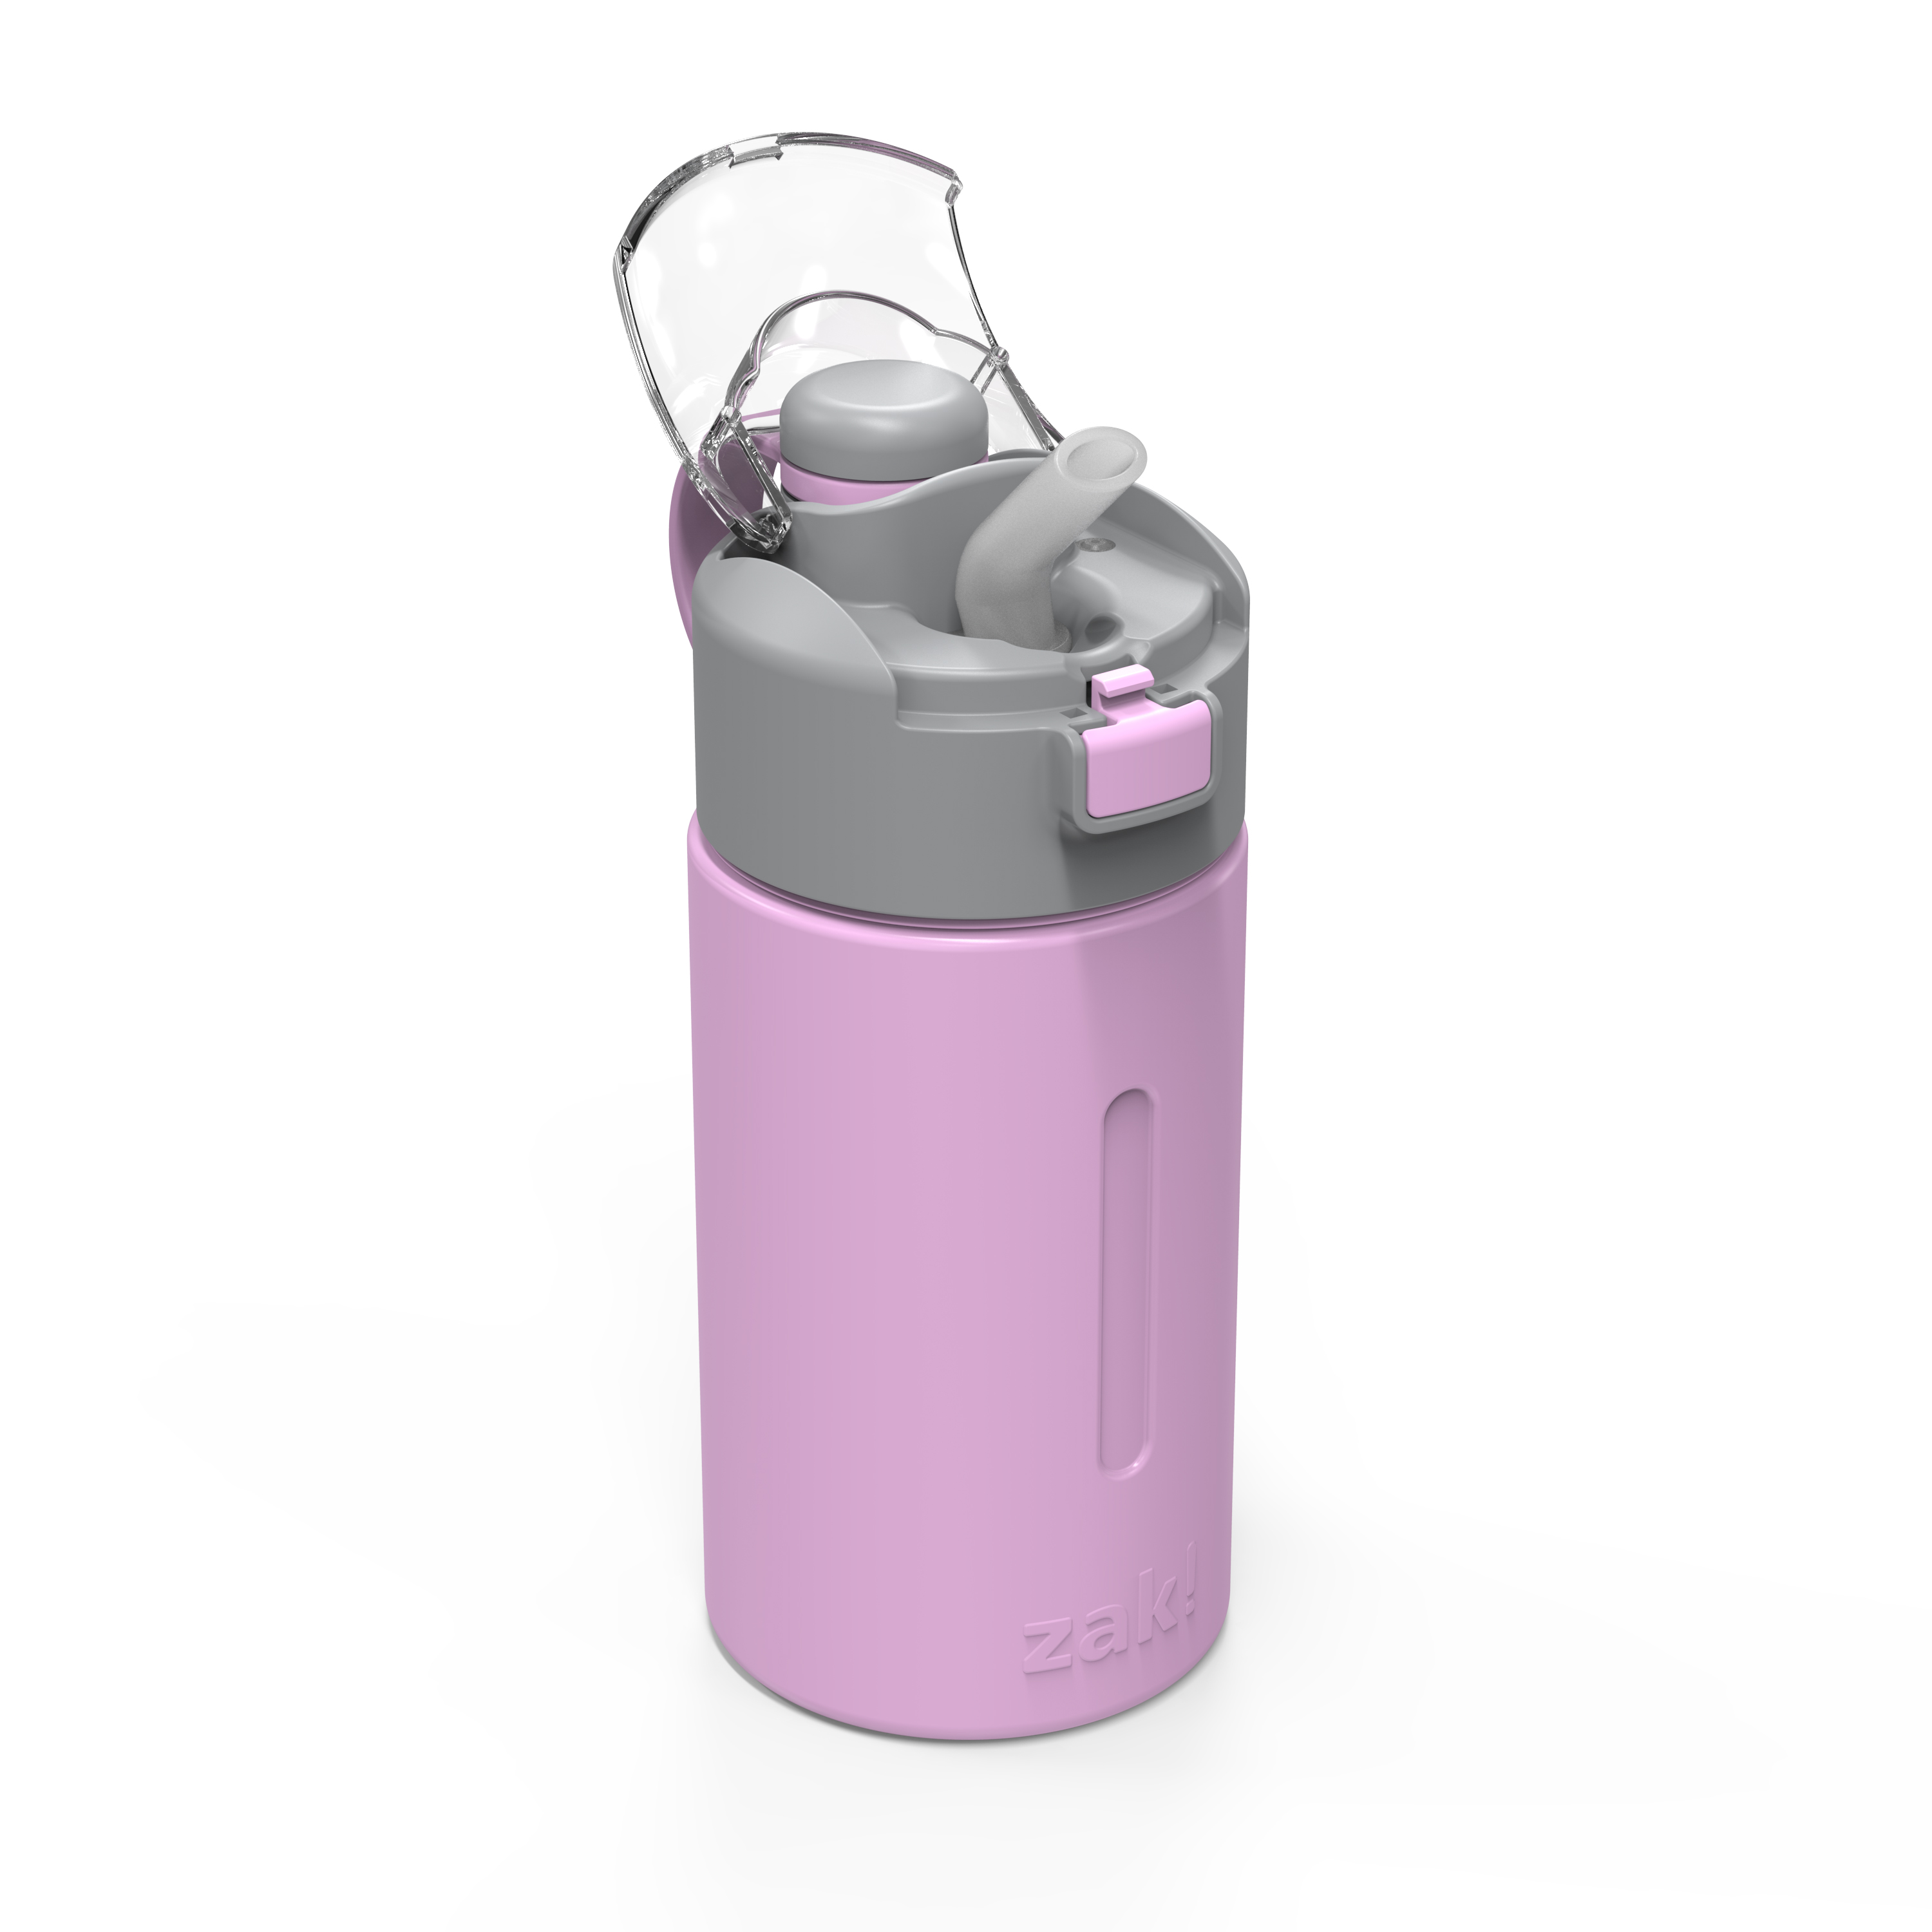 Genesis 12 ounce Vacuum Insulated Stainless Steel Tumbler, Lilac slideshow image 4